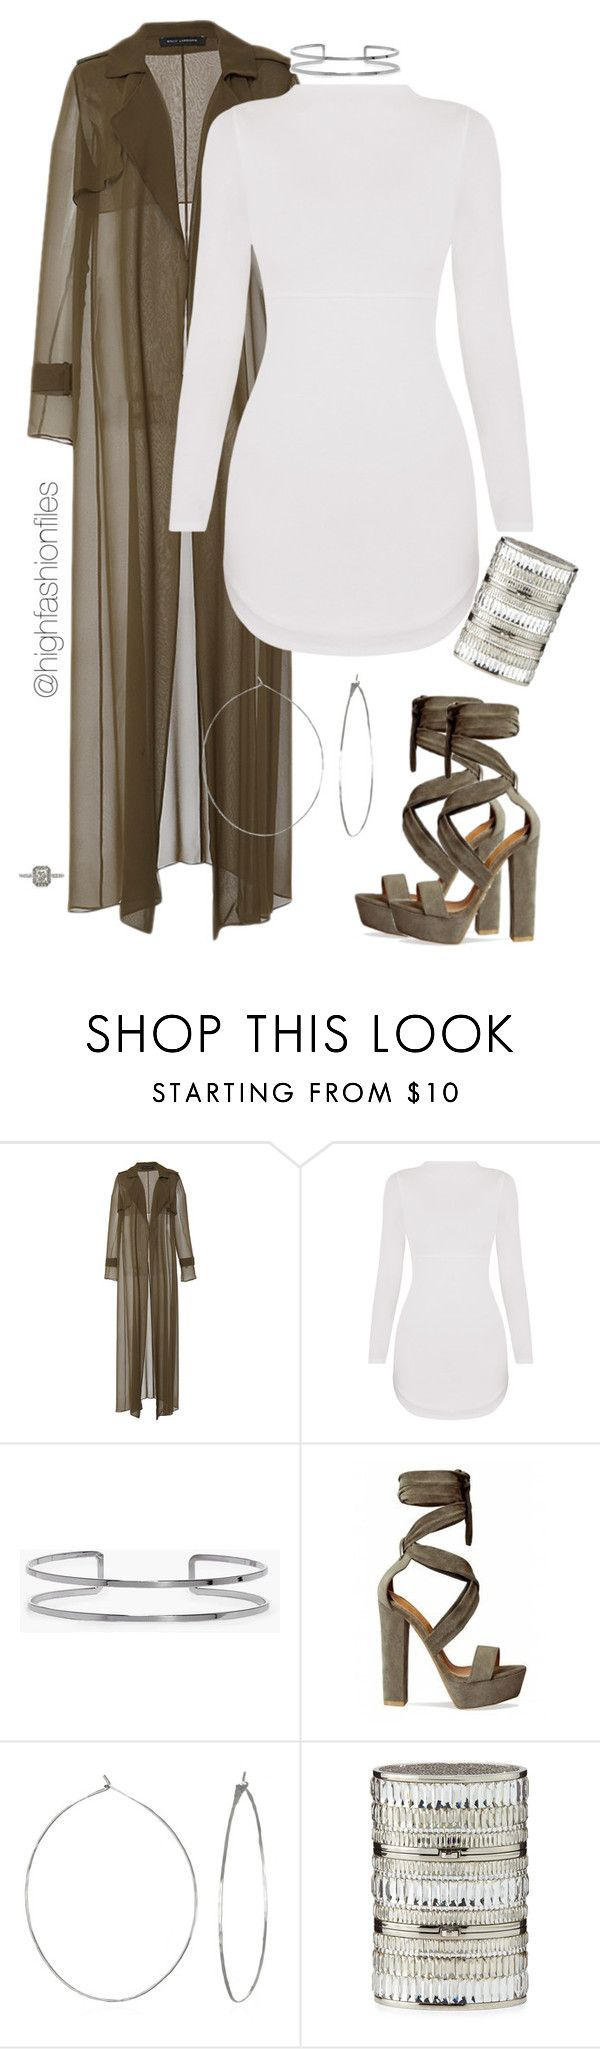 """""""Party Time"""" by highfashionfiles ❤ liked on Polyvore featuring Sally Lapointe, Boohoo, Phyllis + Rosie, Judith Leiber and Mark Broumand"""